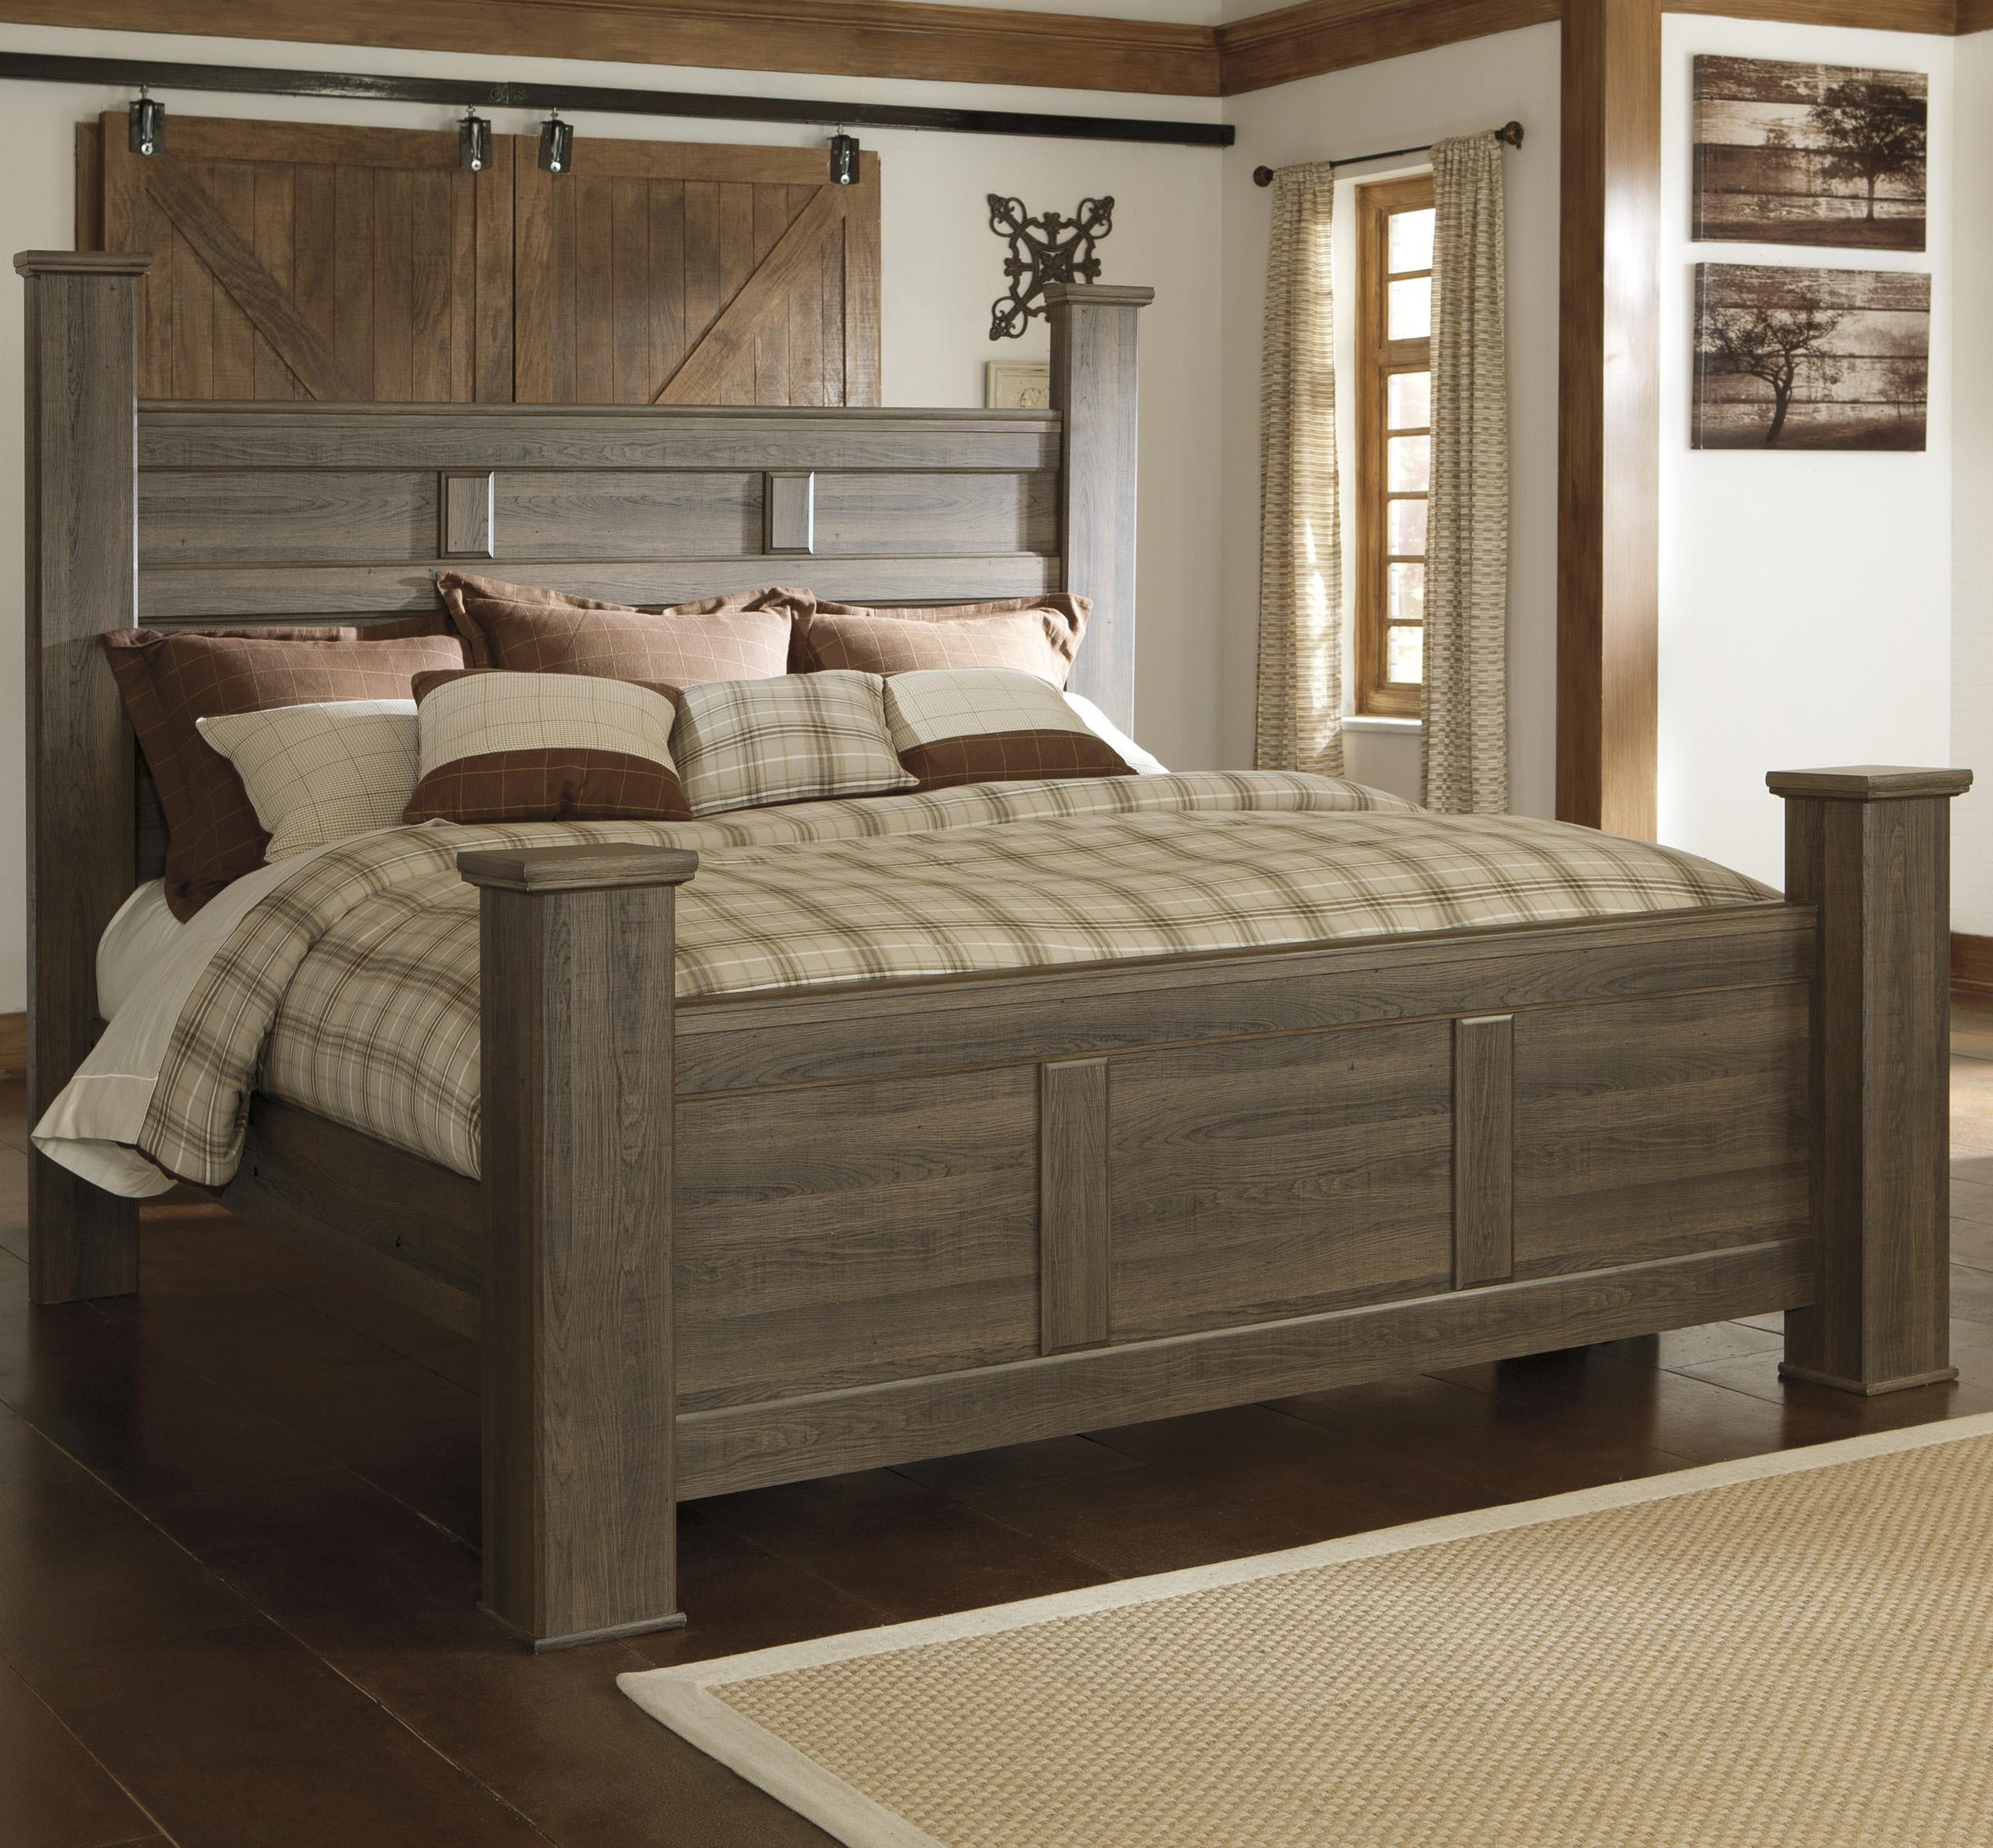 Signature Design By Ashley Juararo Transitional California King Poster Bed Royal Furniture Poster Beds